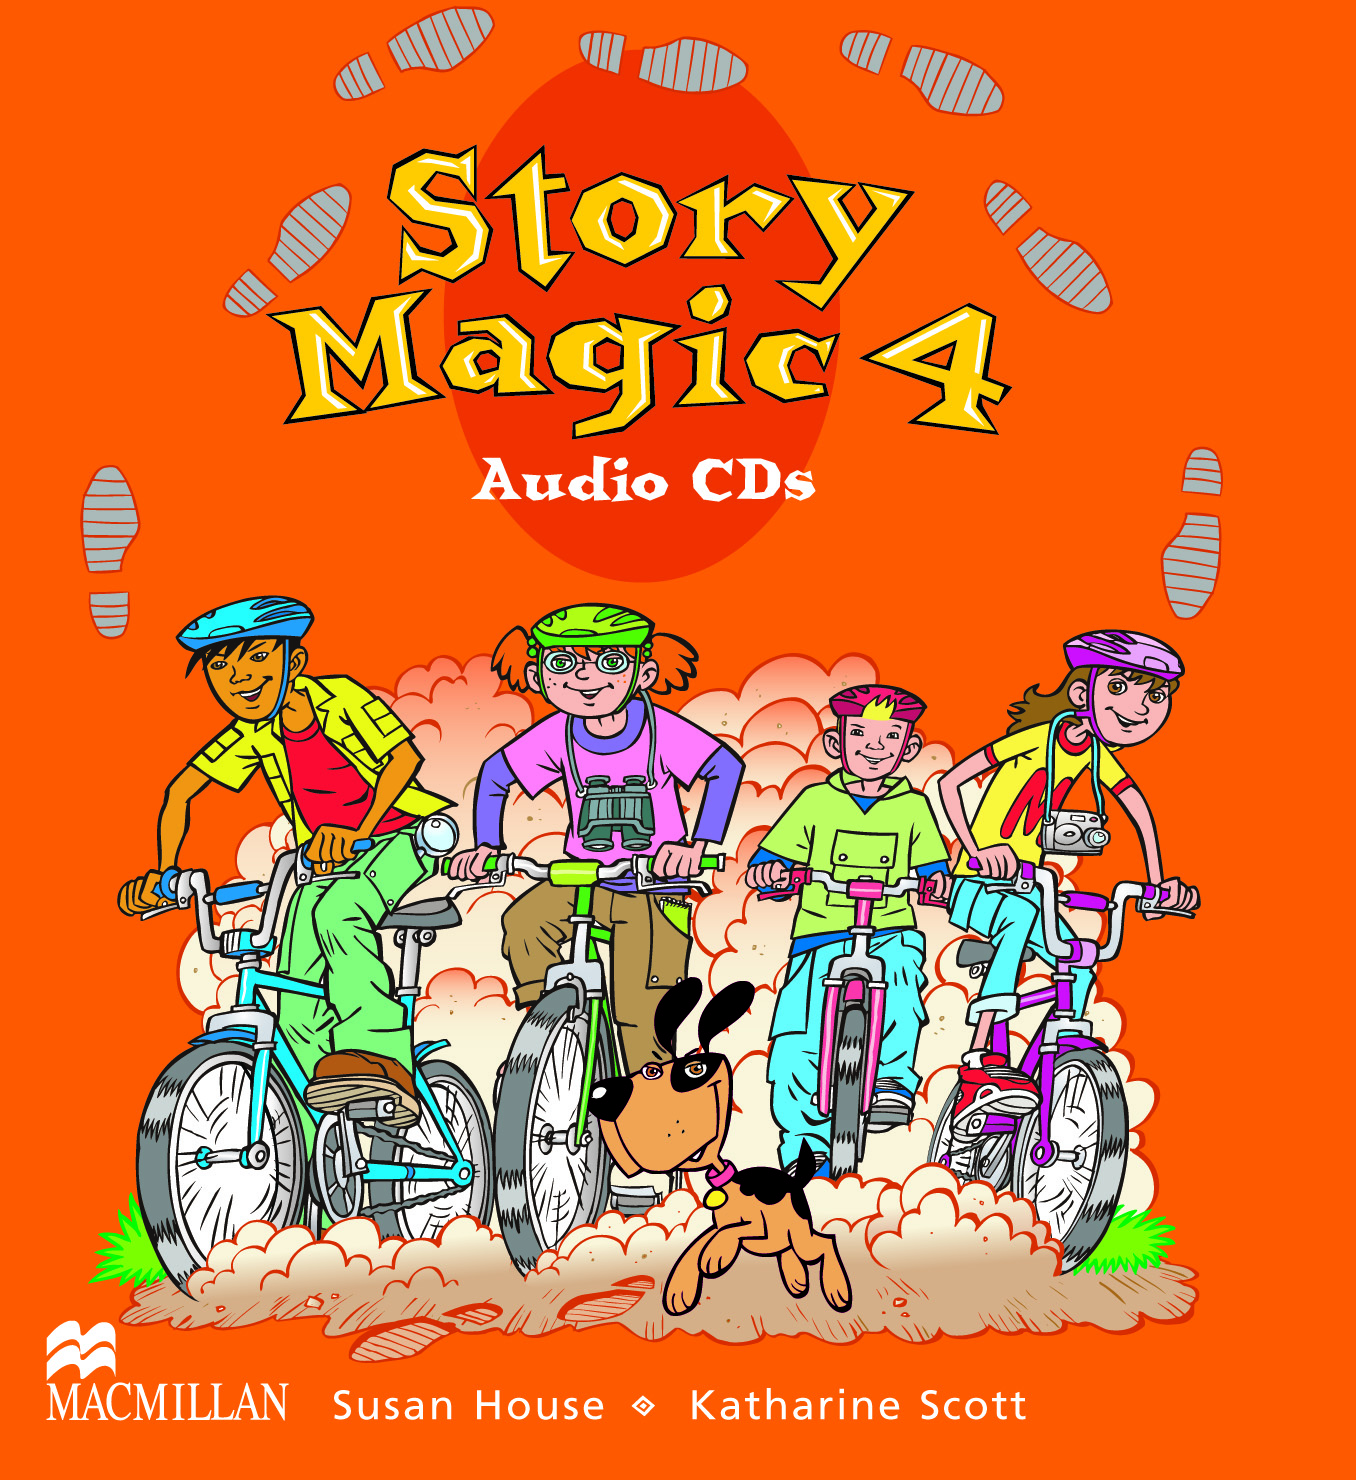 Story Magic 4 Audio CD